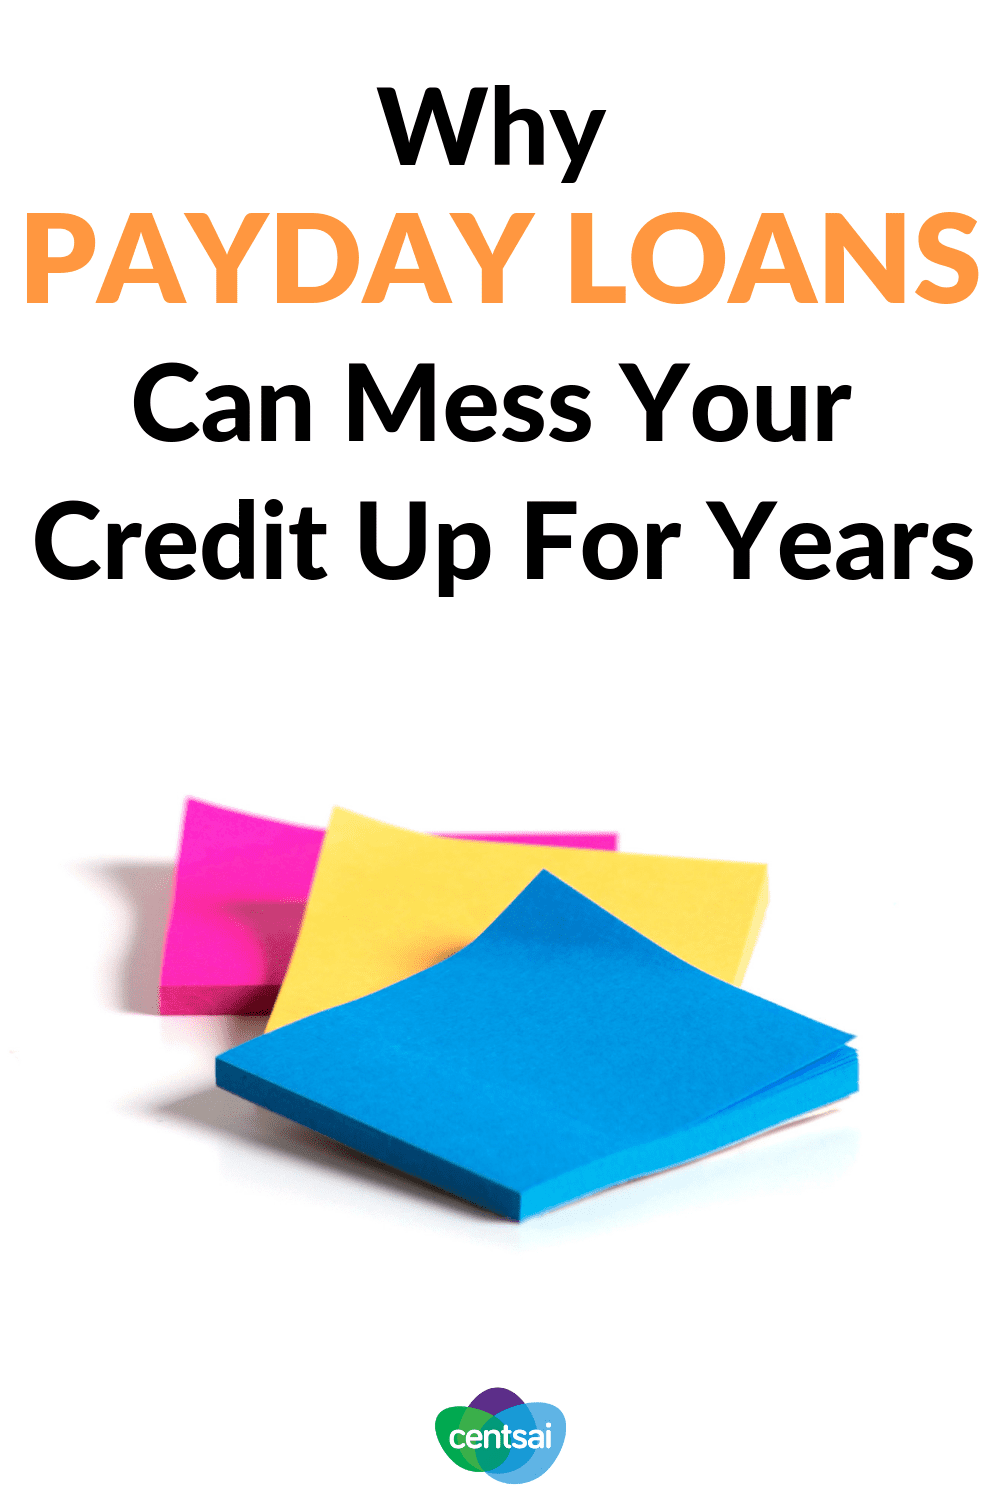 Why Payday Loans Can Mess Your Credit Up For Years. Are you in a financial hole? Payday loans can be tempting, but beware. Why are payday loans bad, you ask? Learn how and why to avoid them. #payday #Loans #creditcard #debt #paydayloans